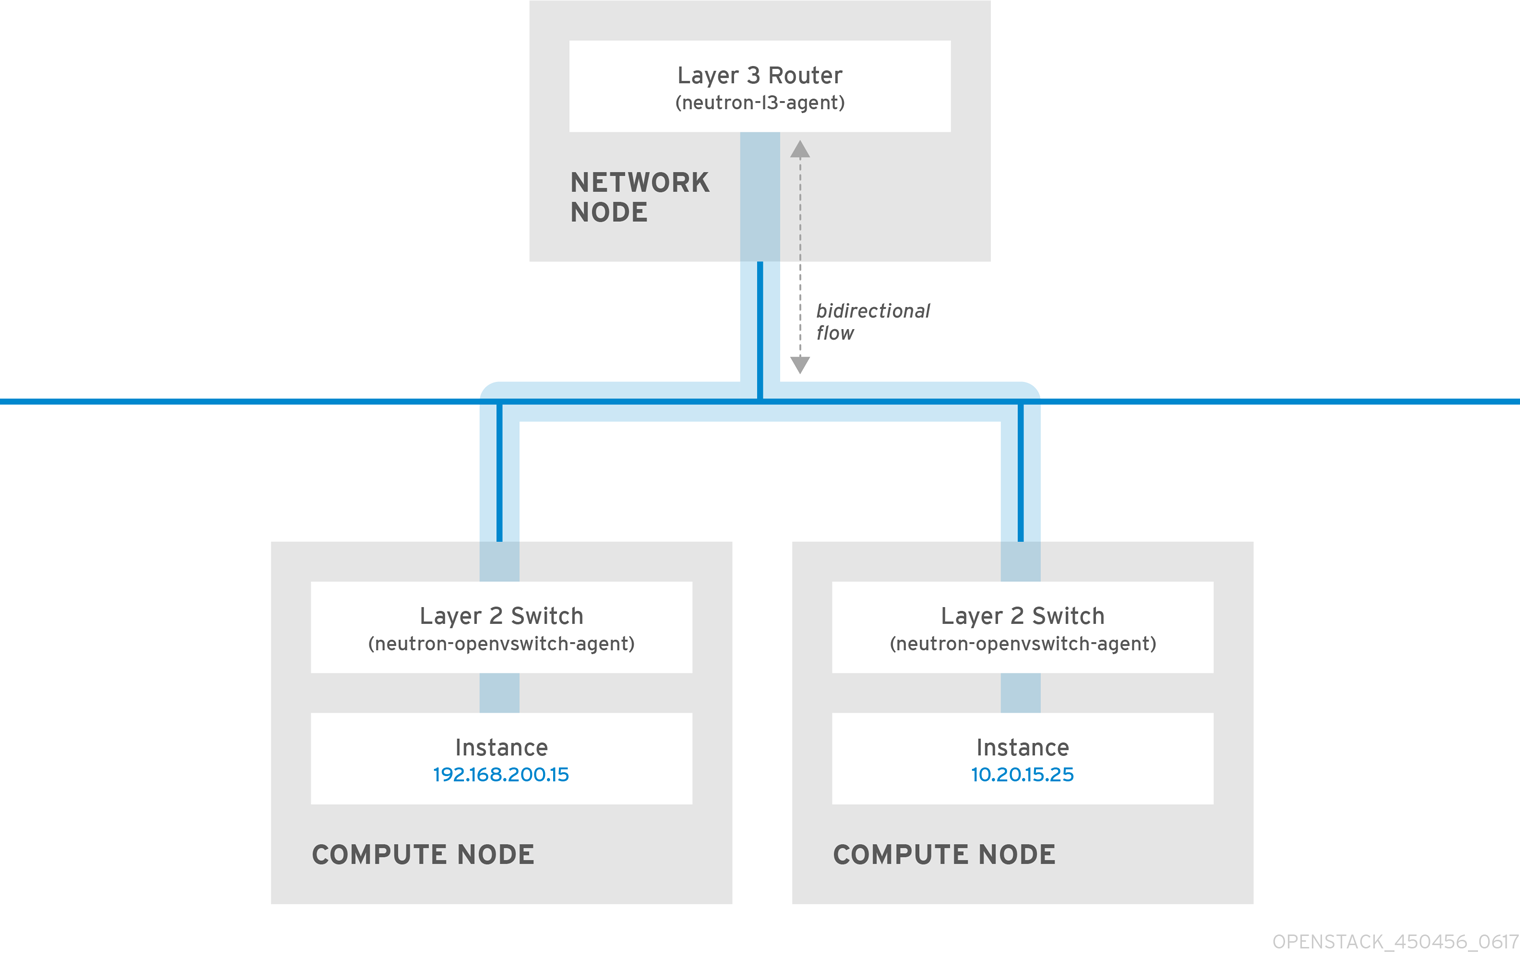 Network with separate VLANs